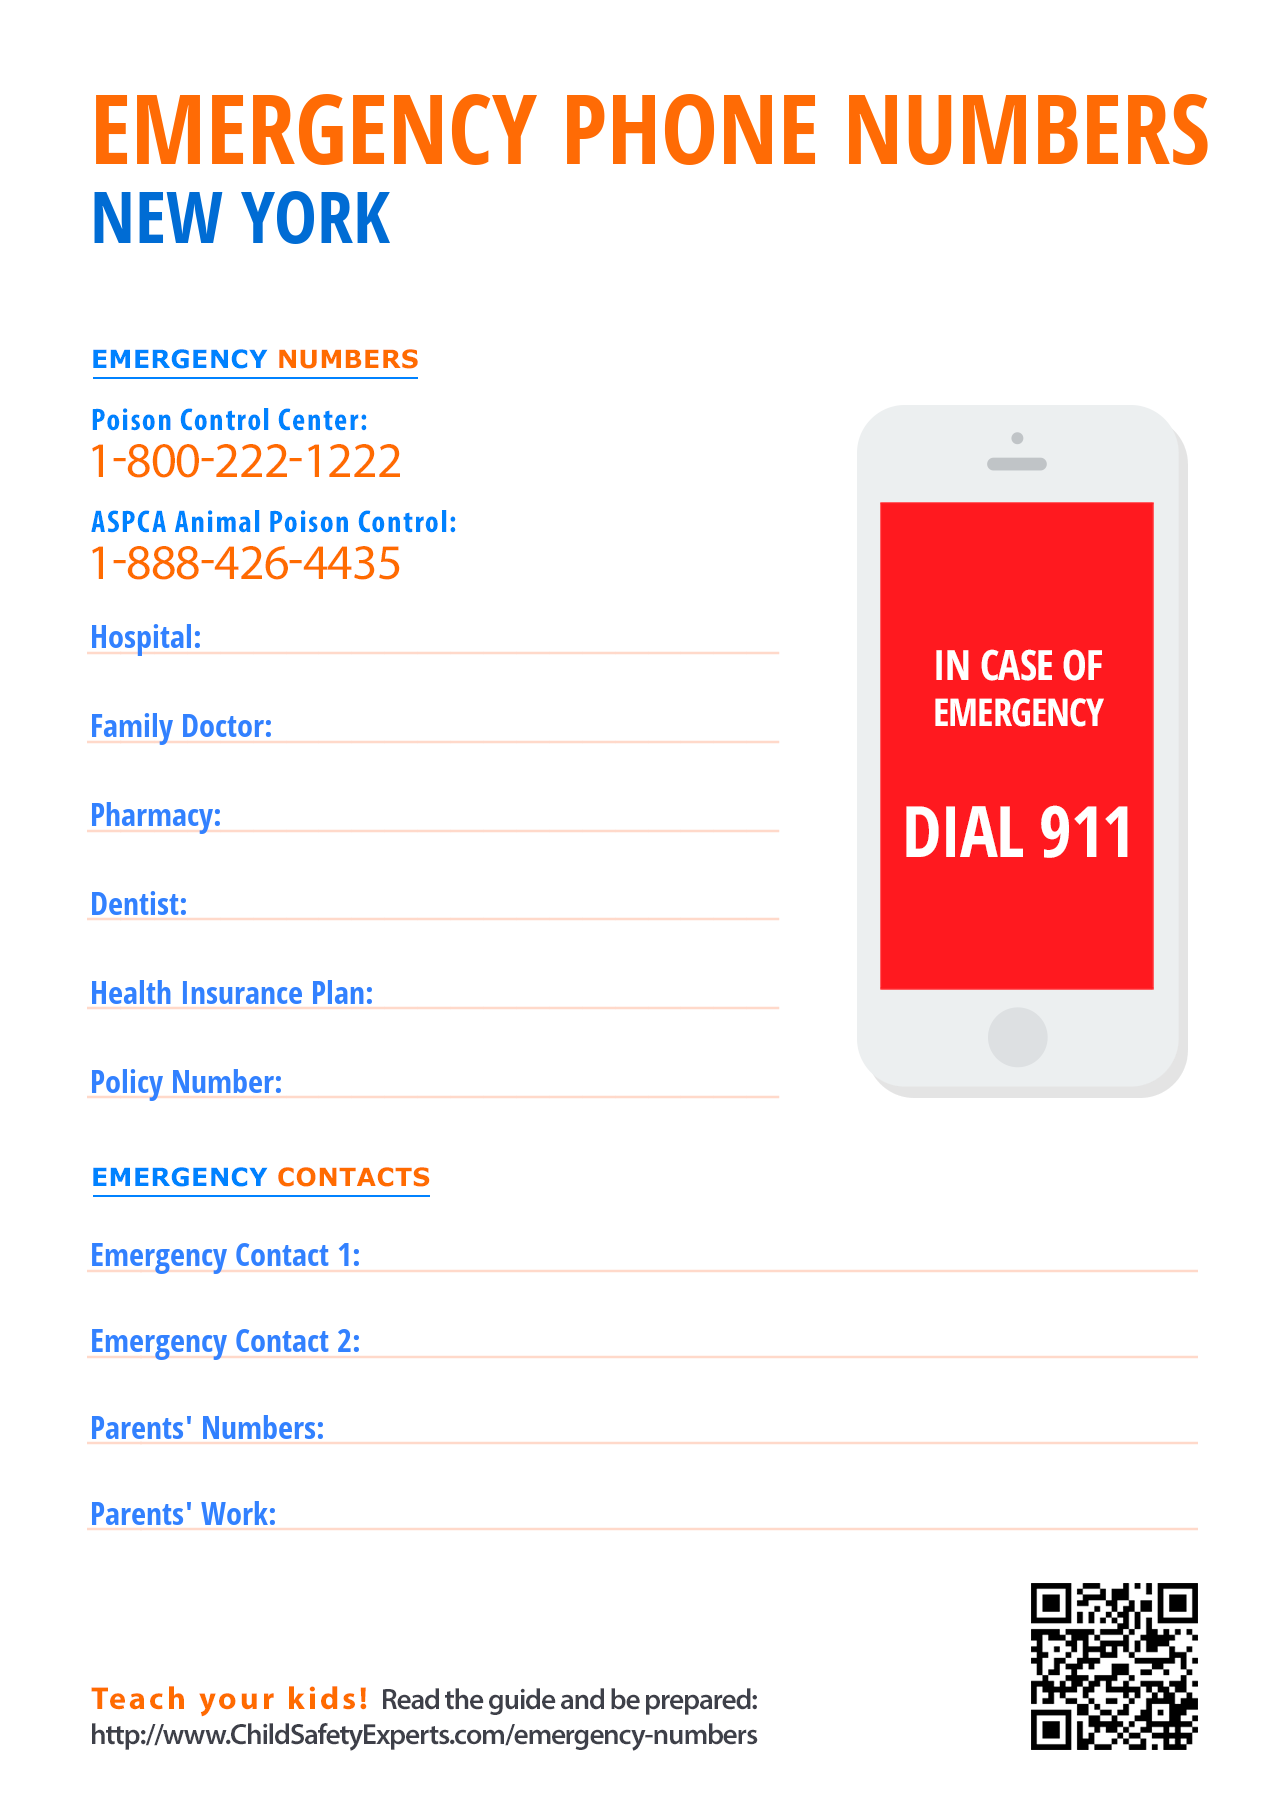 Important emergency phone numbers in New York